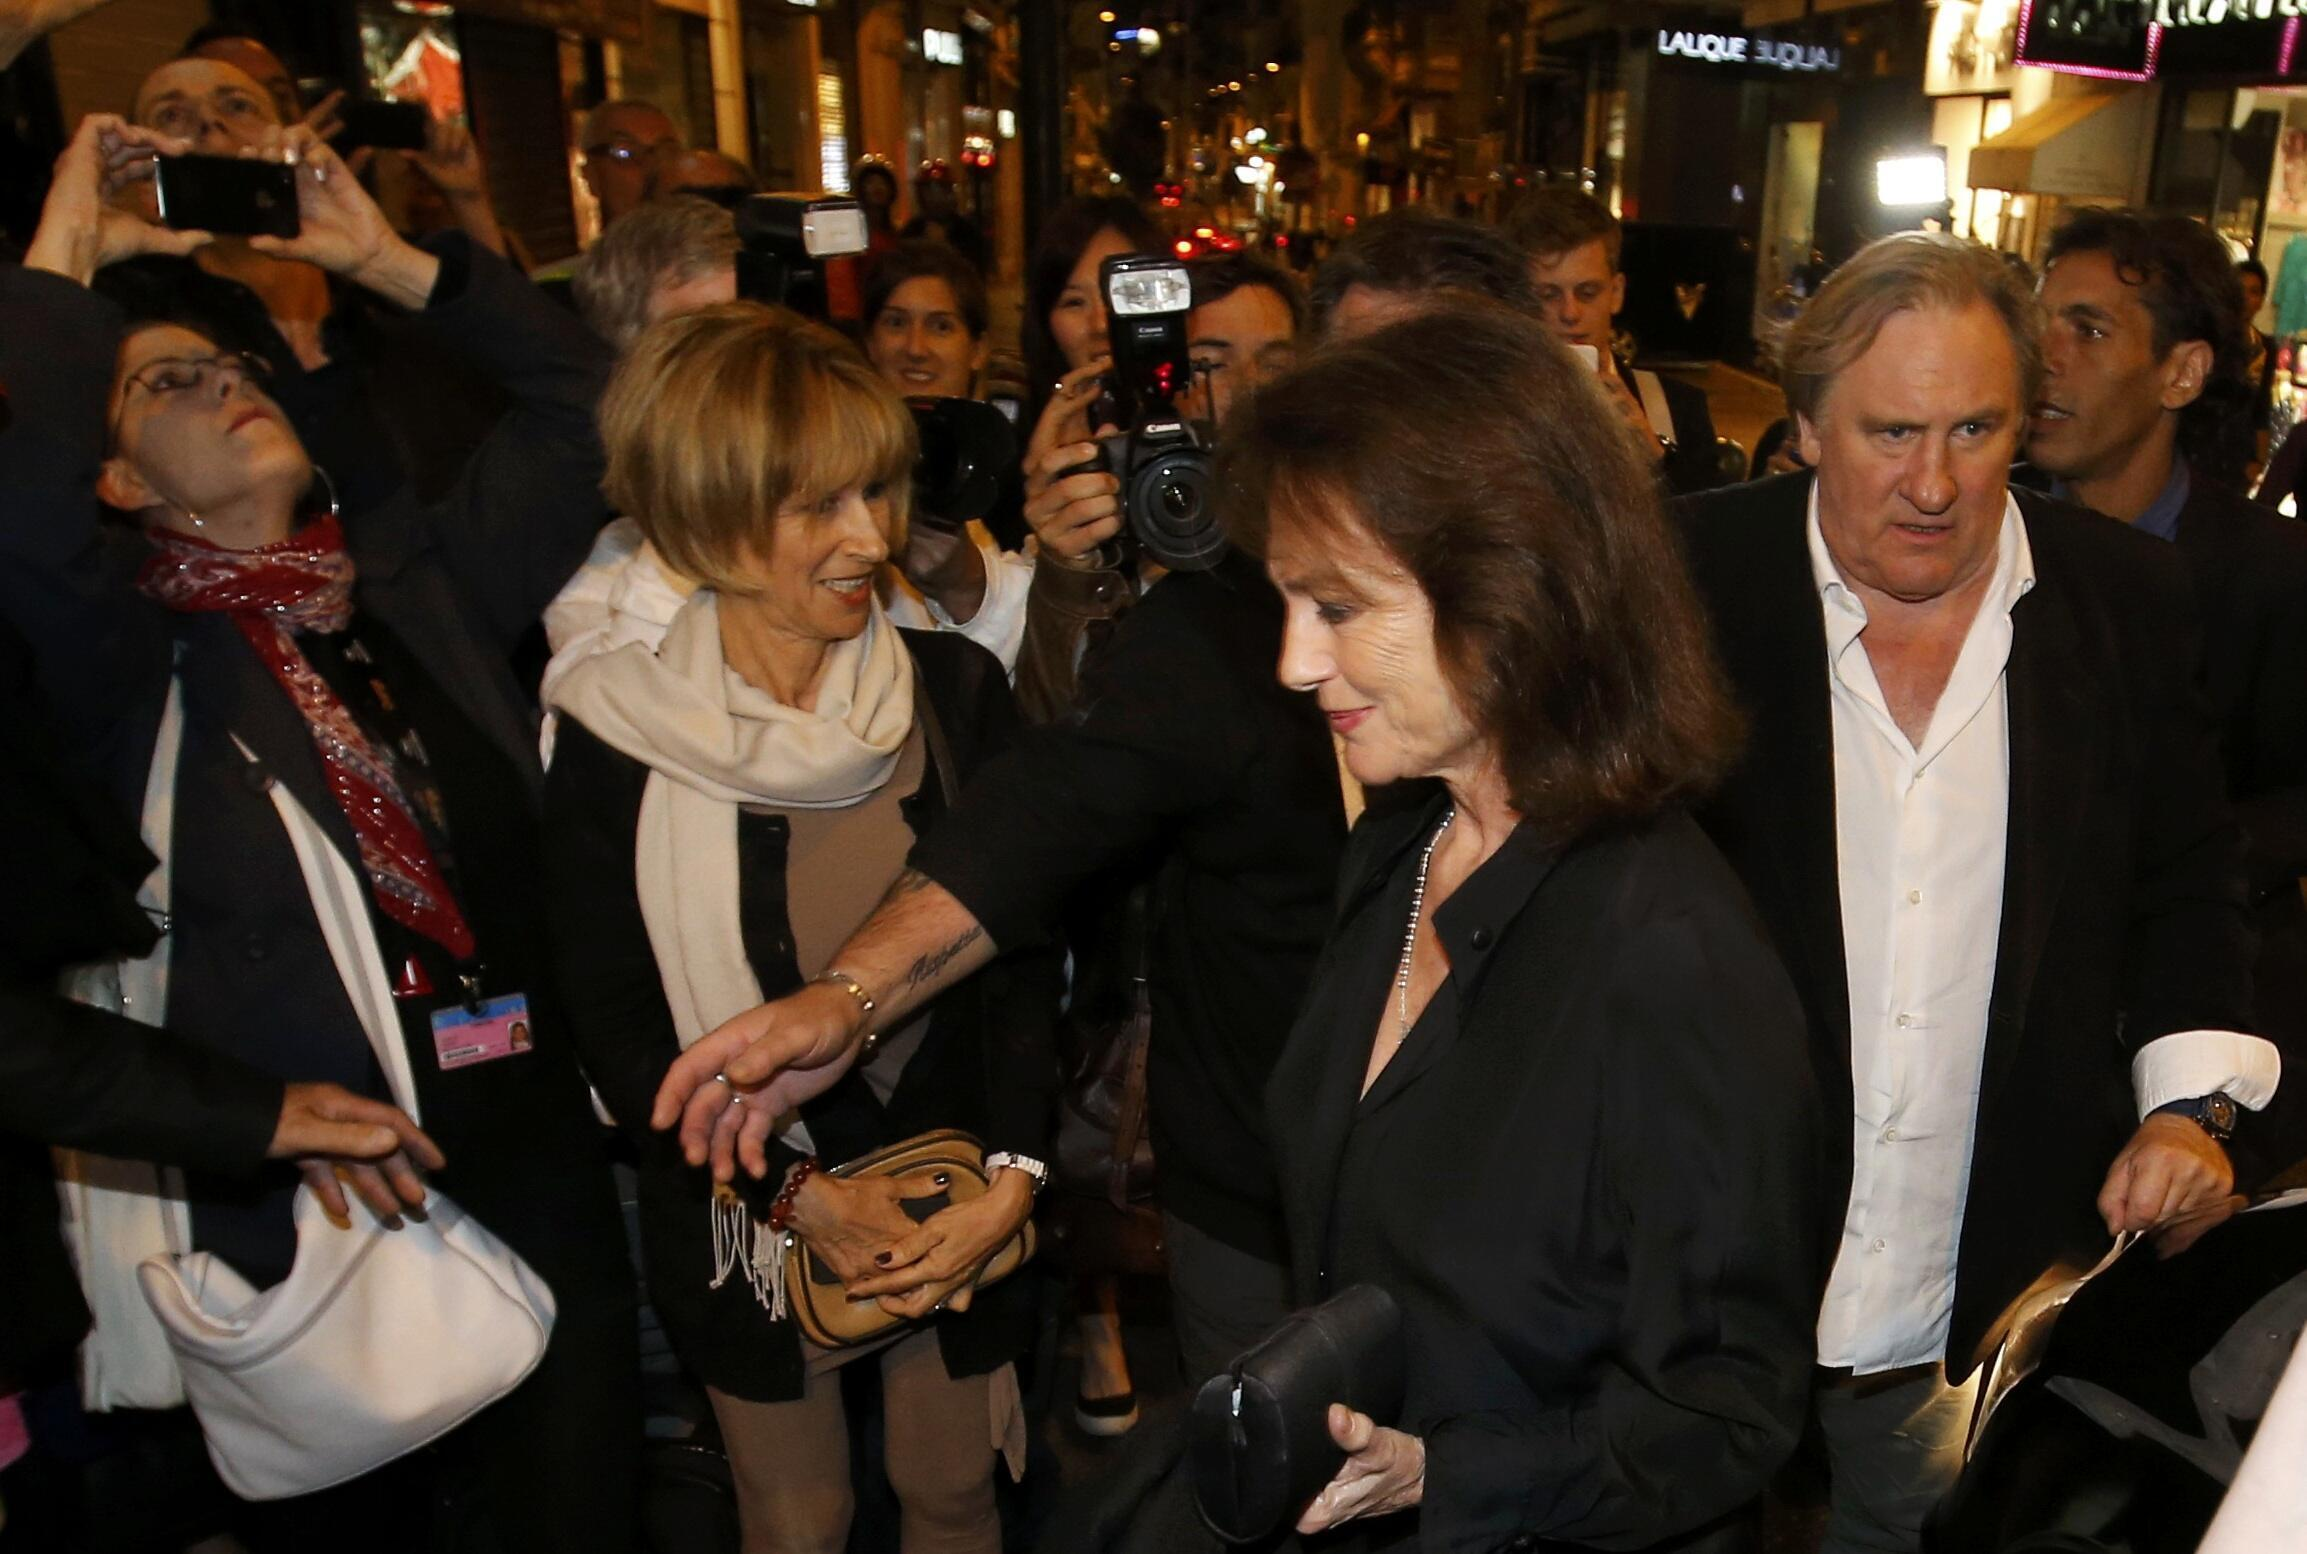 """Gerard Depardieu and Jacqueline Bisset arrive for the screening of the film """"Welcome to New York"""",  Cannes  17 May 2014."""